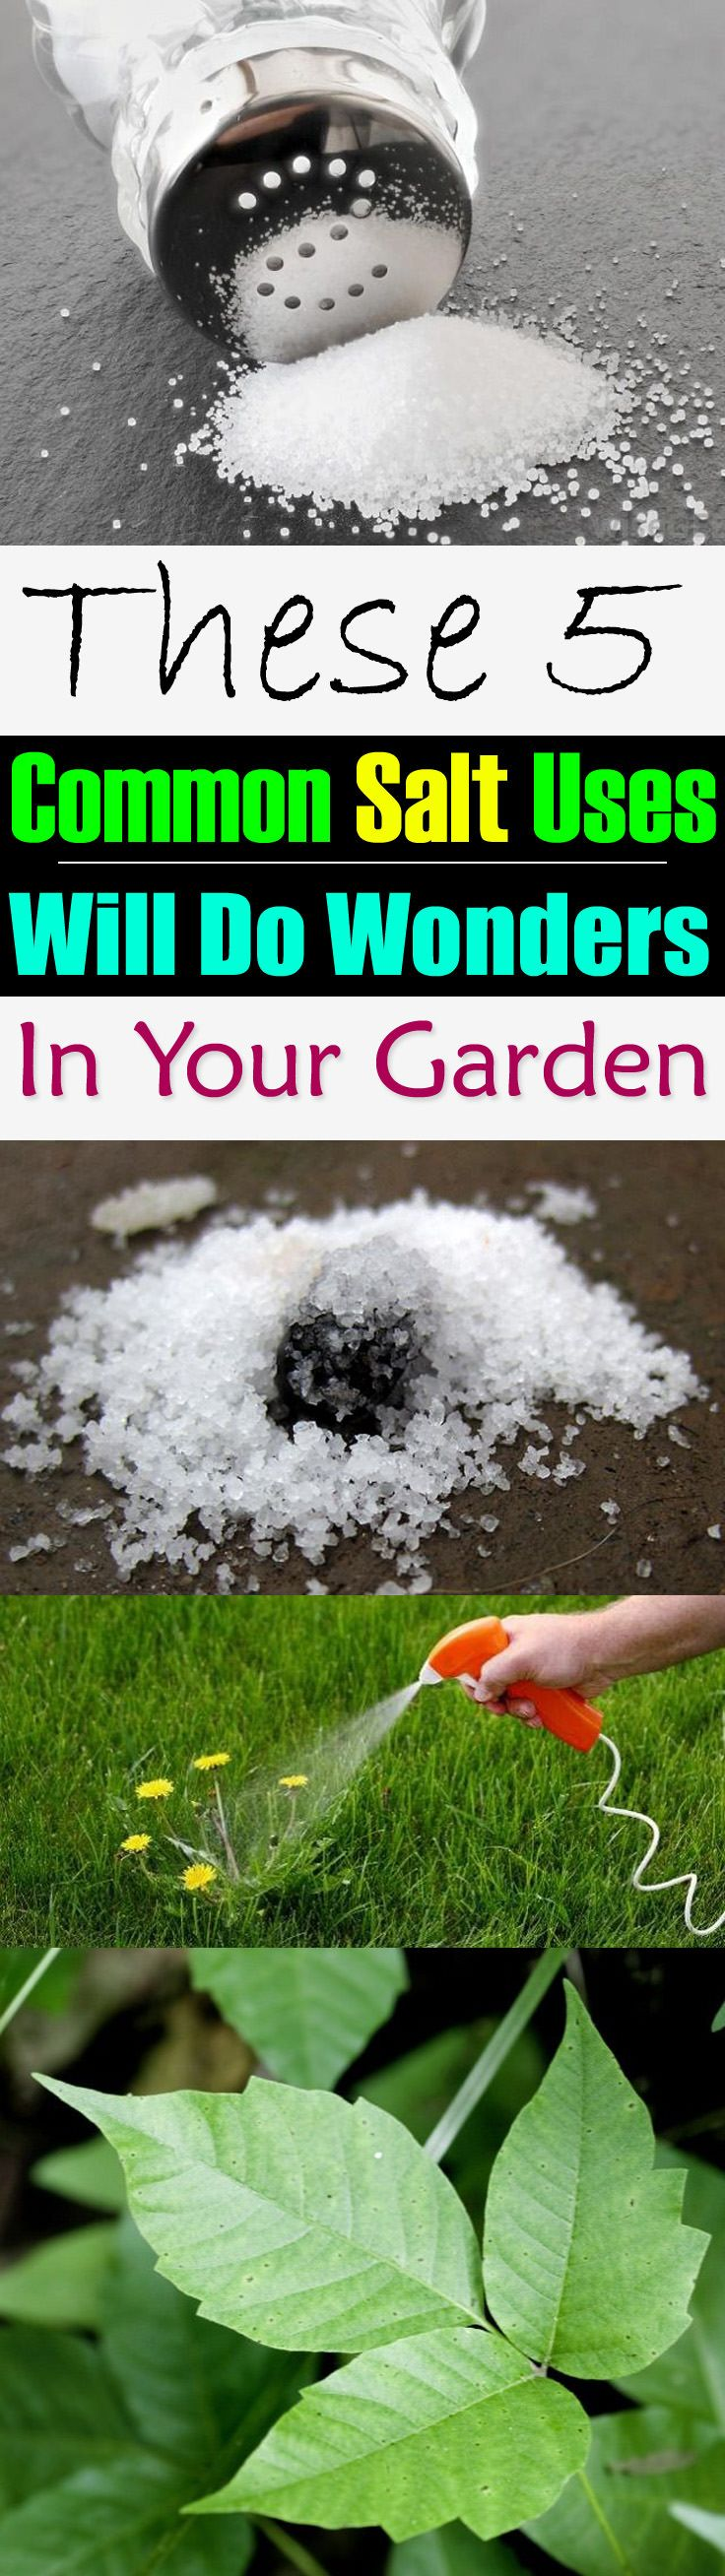 These 5 Common Salt Uses Will Do Wonders In Your Garden